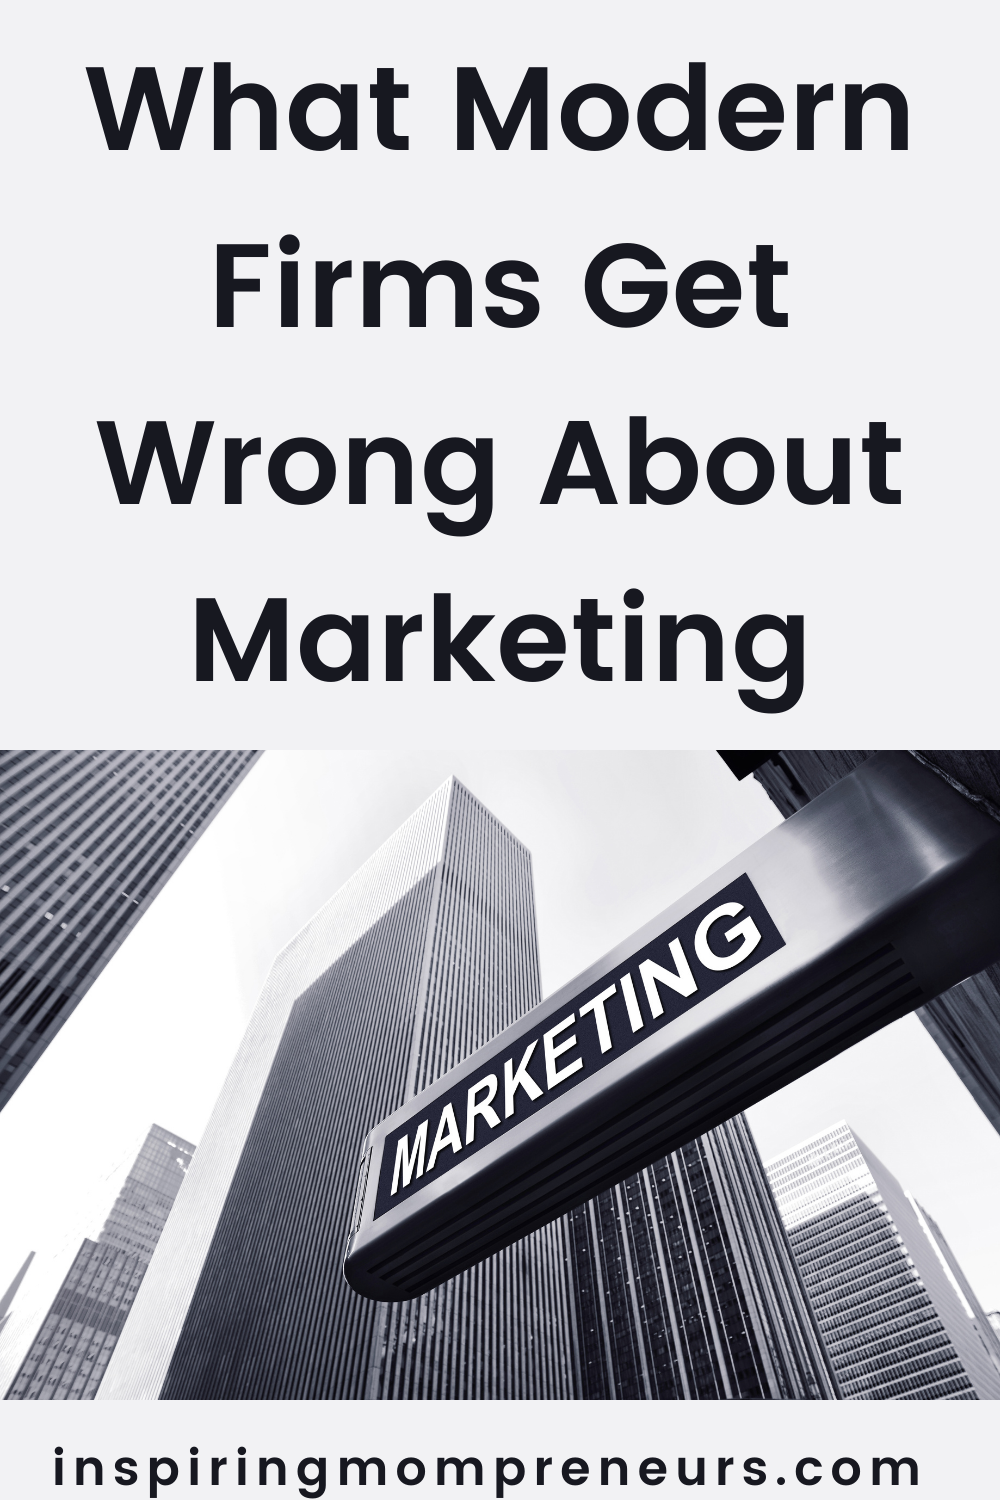 Some companies may not truly understand how to leverage the latest marketing trends to their benefit. This is what modern firms get wrong about marketing.